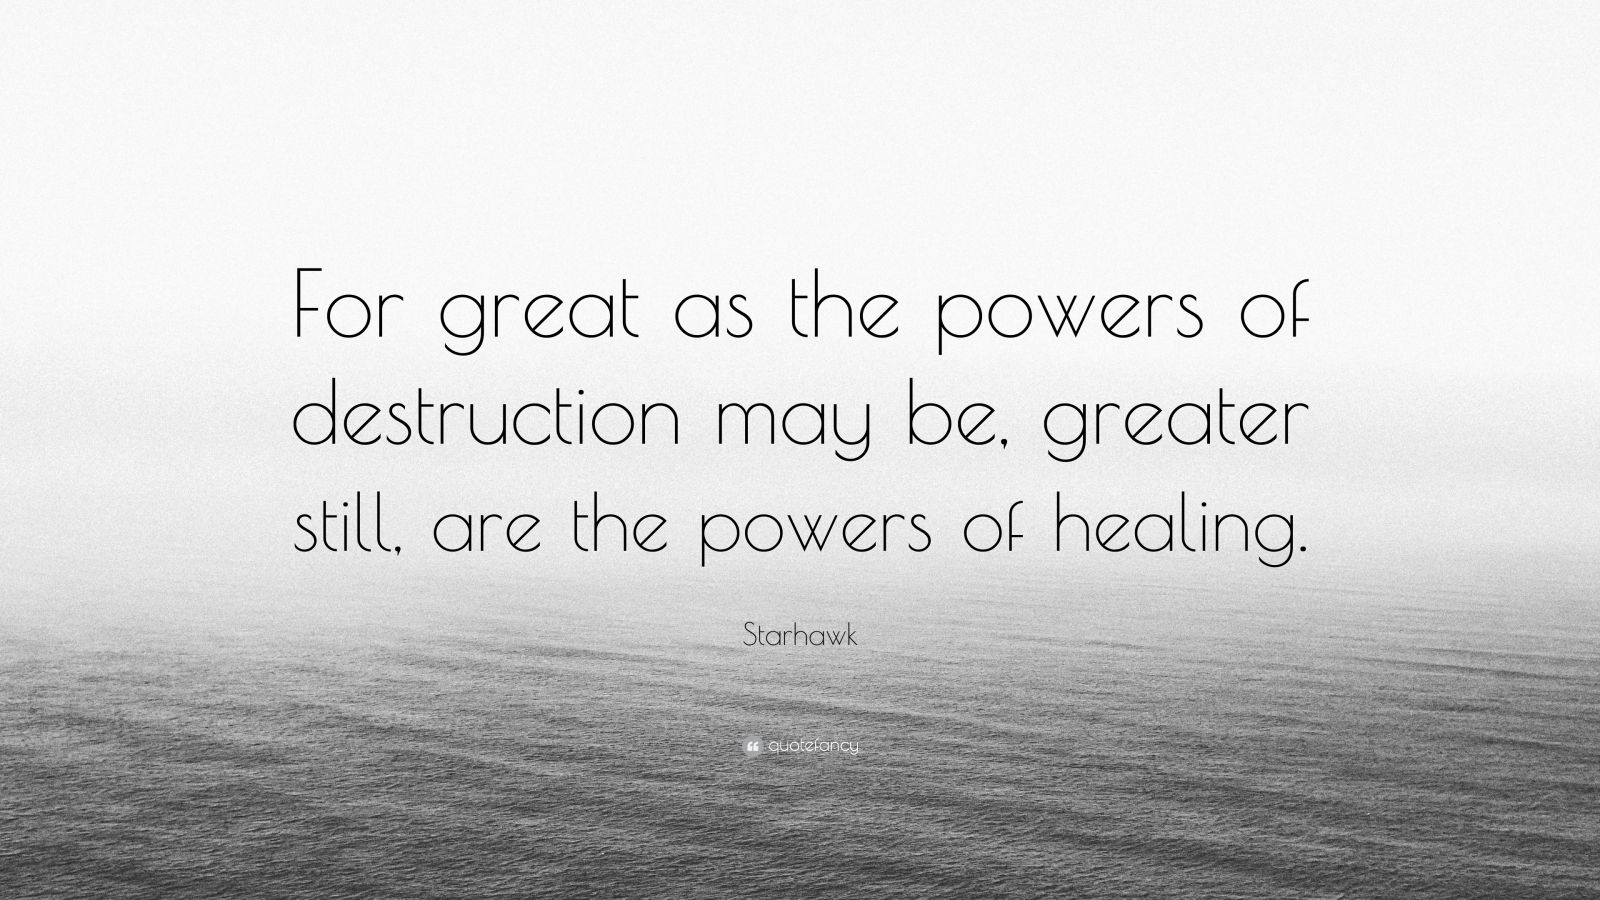 """Starhawk Quote: """"For great as the powers of destruction may be, greater still, are the powers of healing."""""""